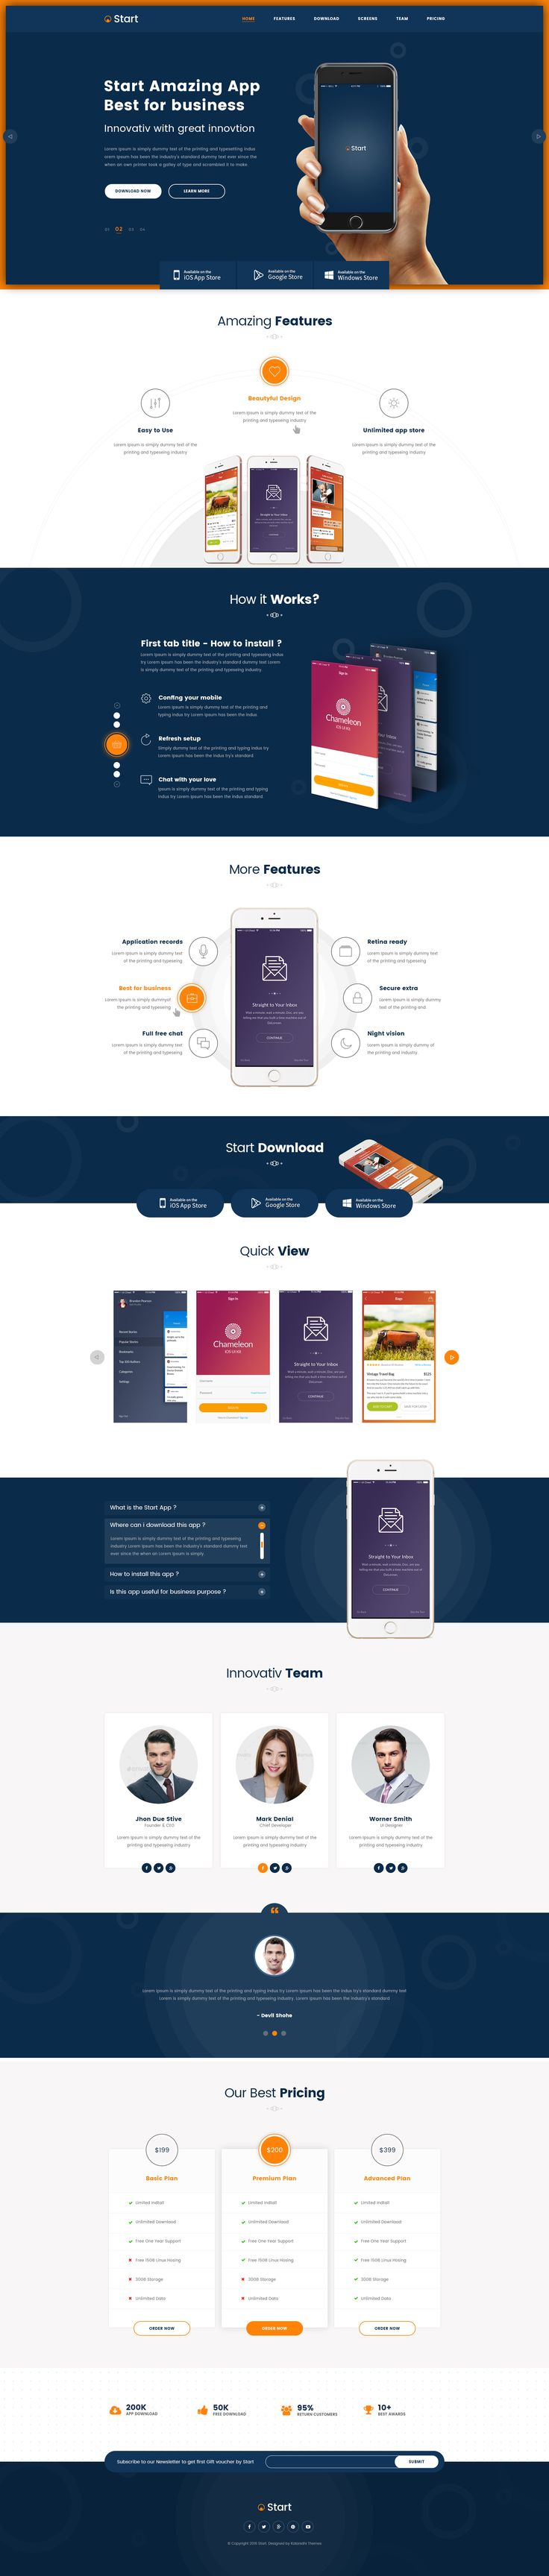 http://themeforest.net/item/start-app-landing-page-psd-template/16513629?s_rank=16